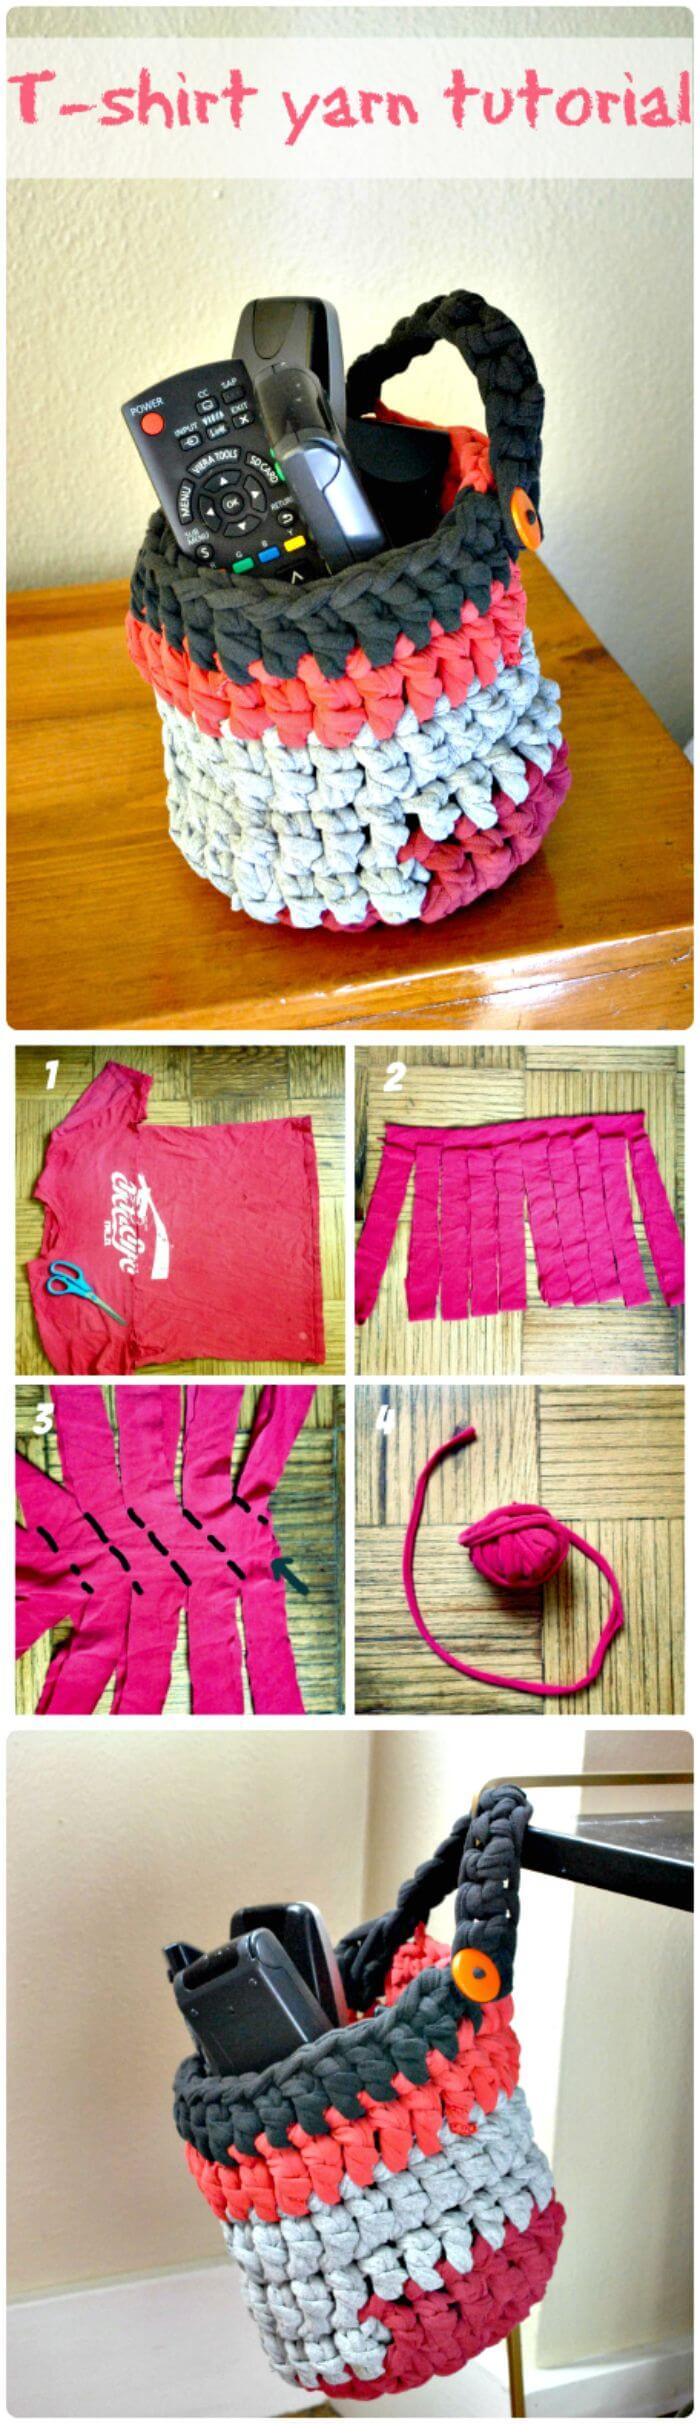 240 Easy Craft Ideas to Make and Sell - Page 23 of 24 ...